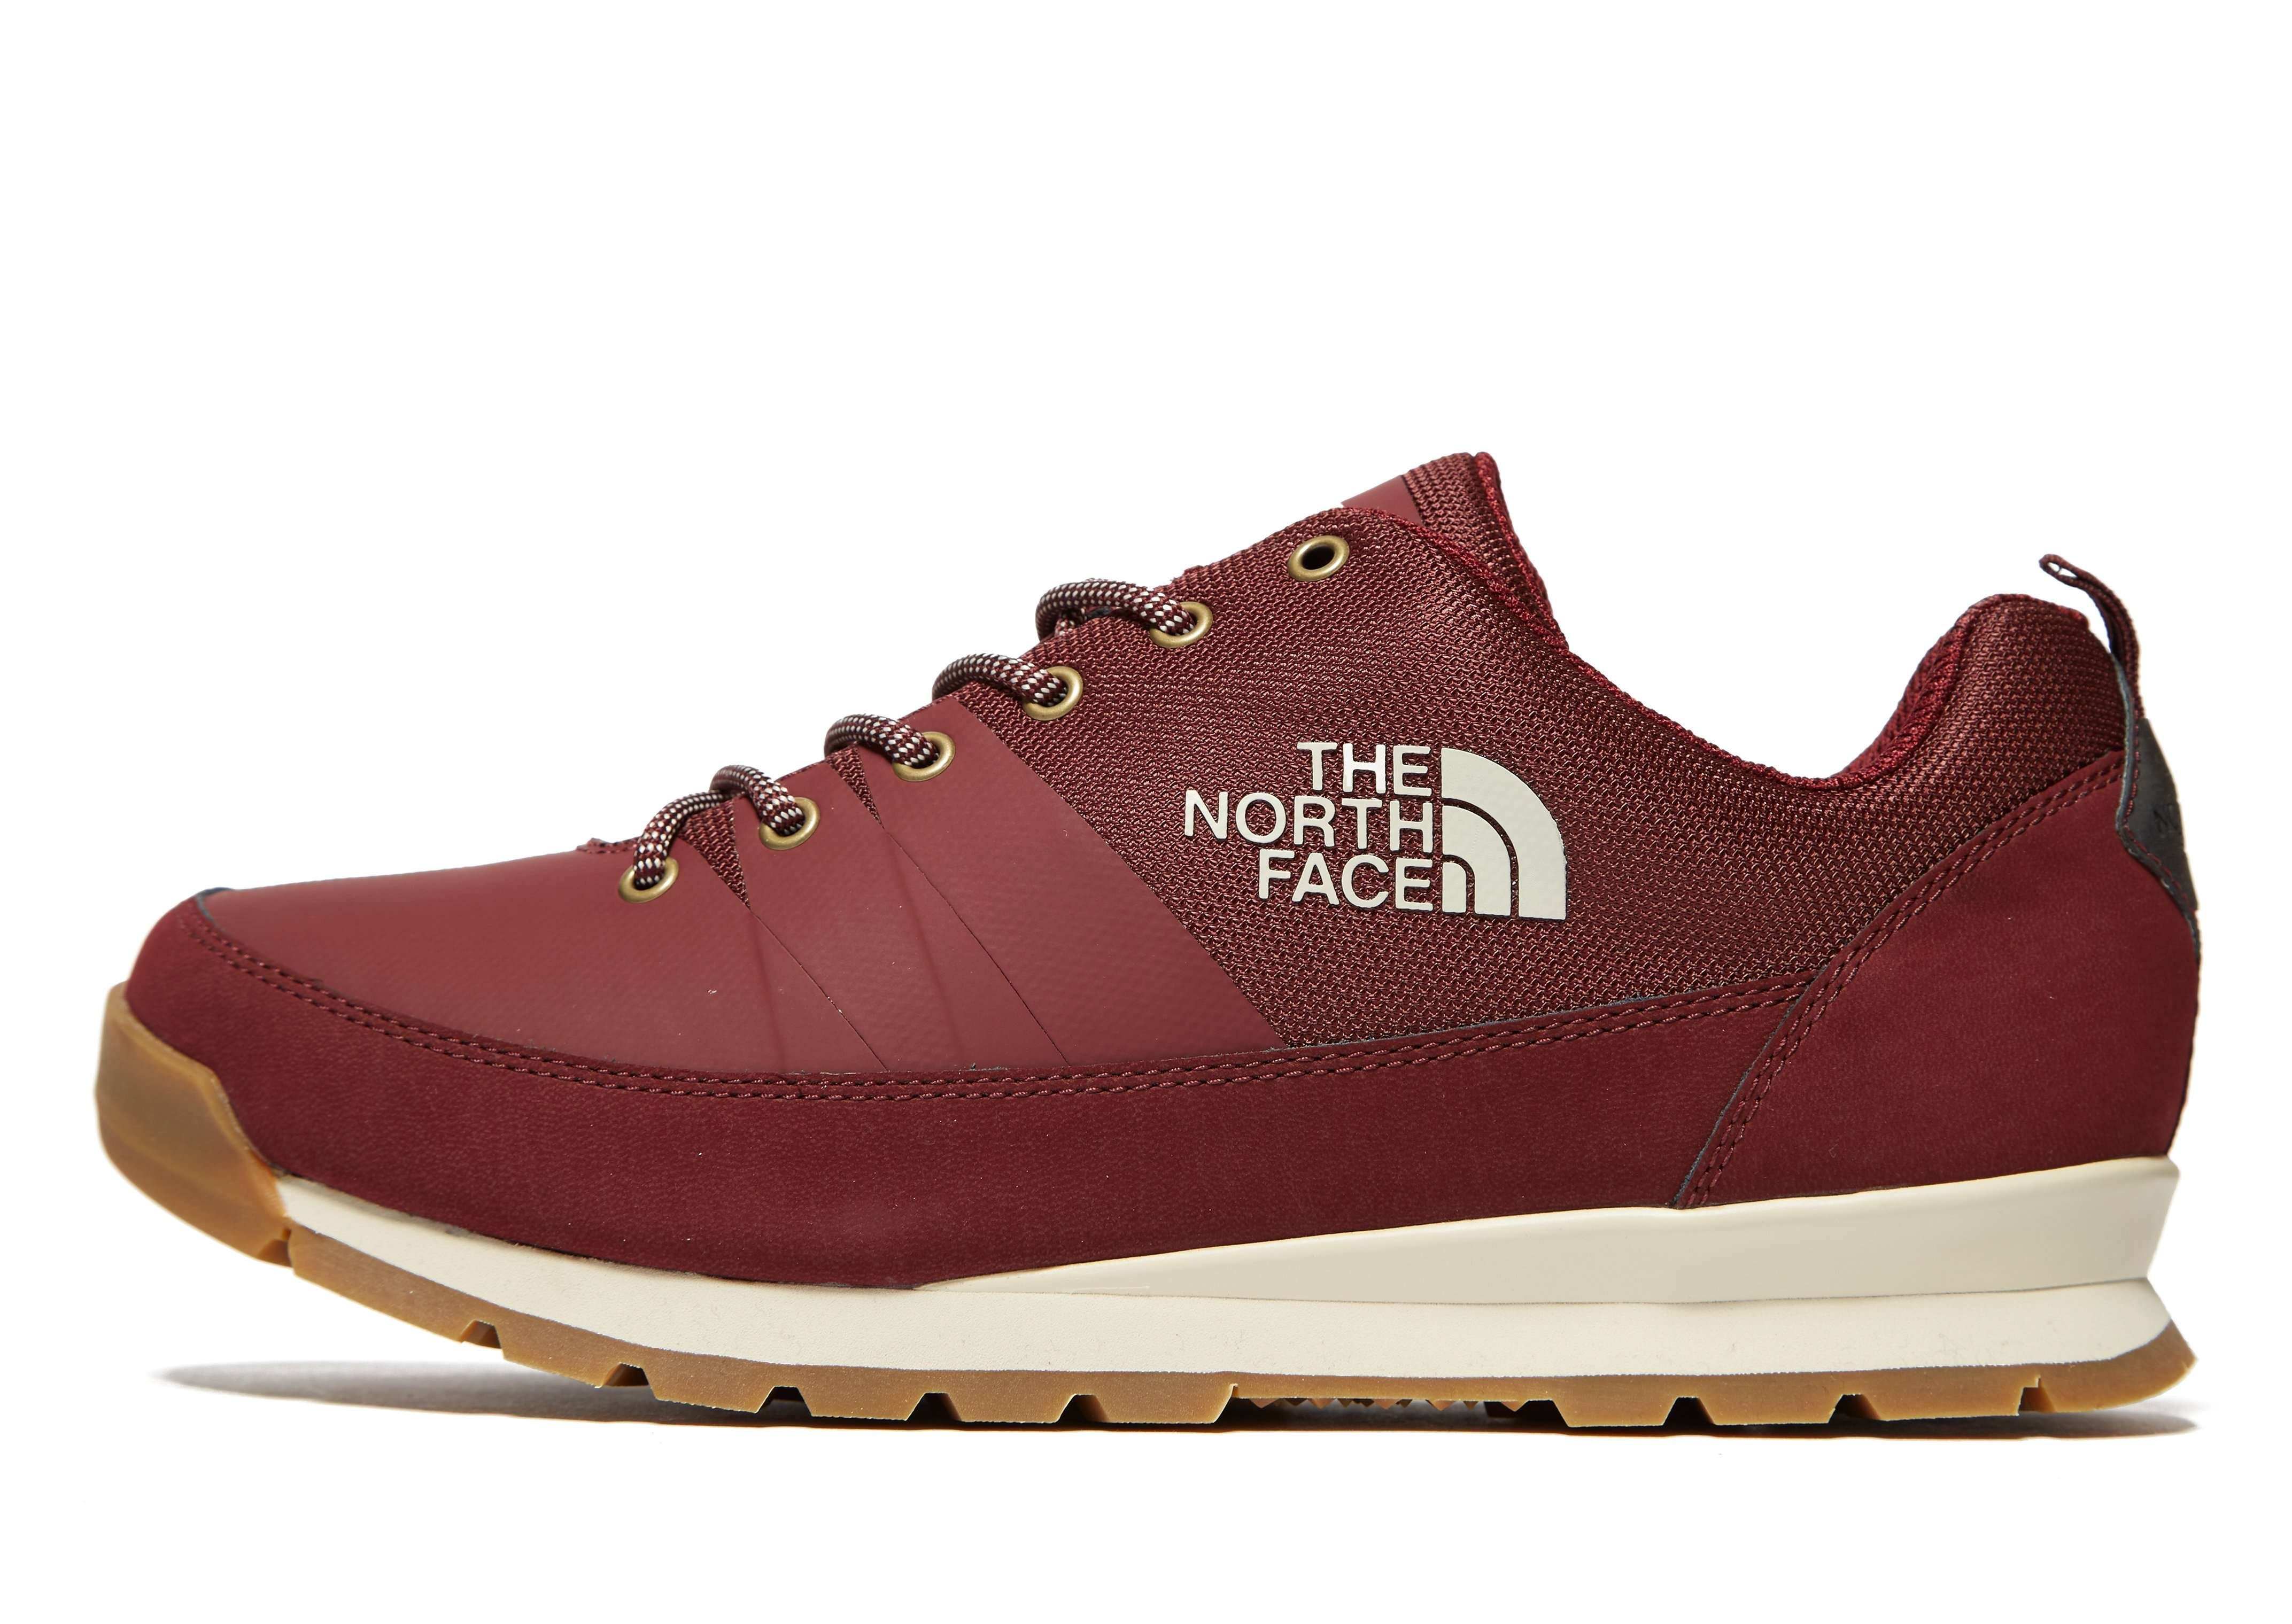 The North Face Back-To-Berkeley JXT - Men's Shoes and Boots - Red 295387